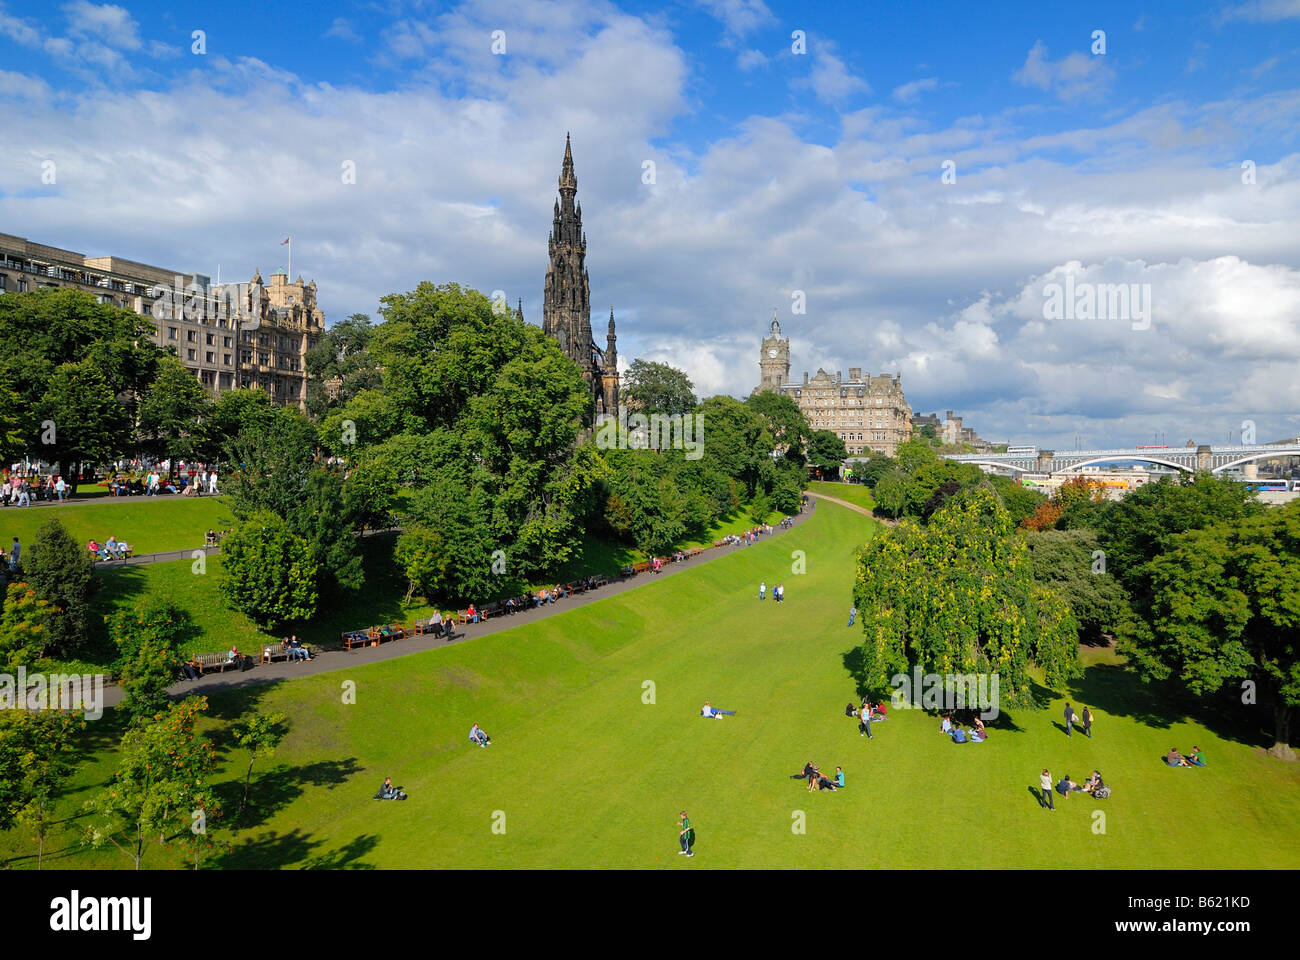 View of East Princes Street Gardens, Edinburgh, Scotland, Great Britain, Europe - Stock Image